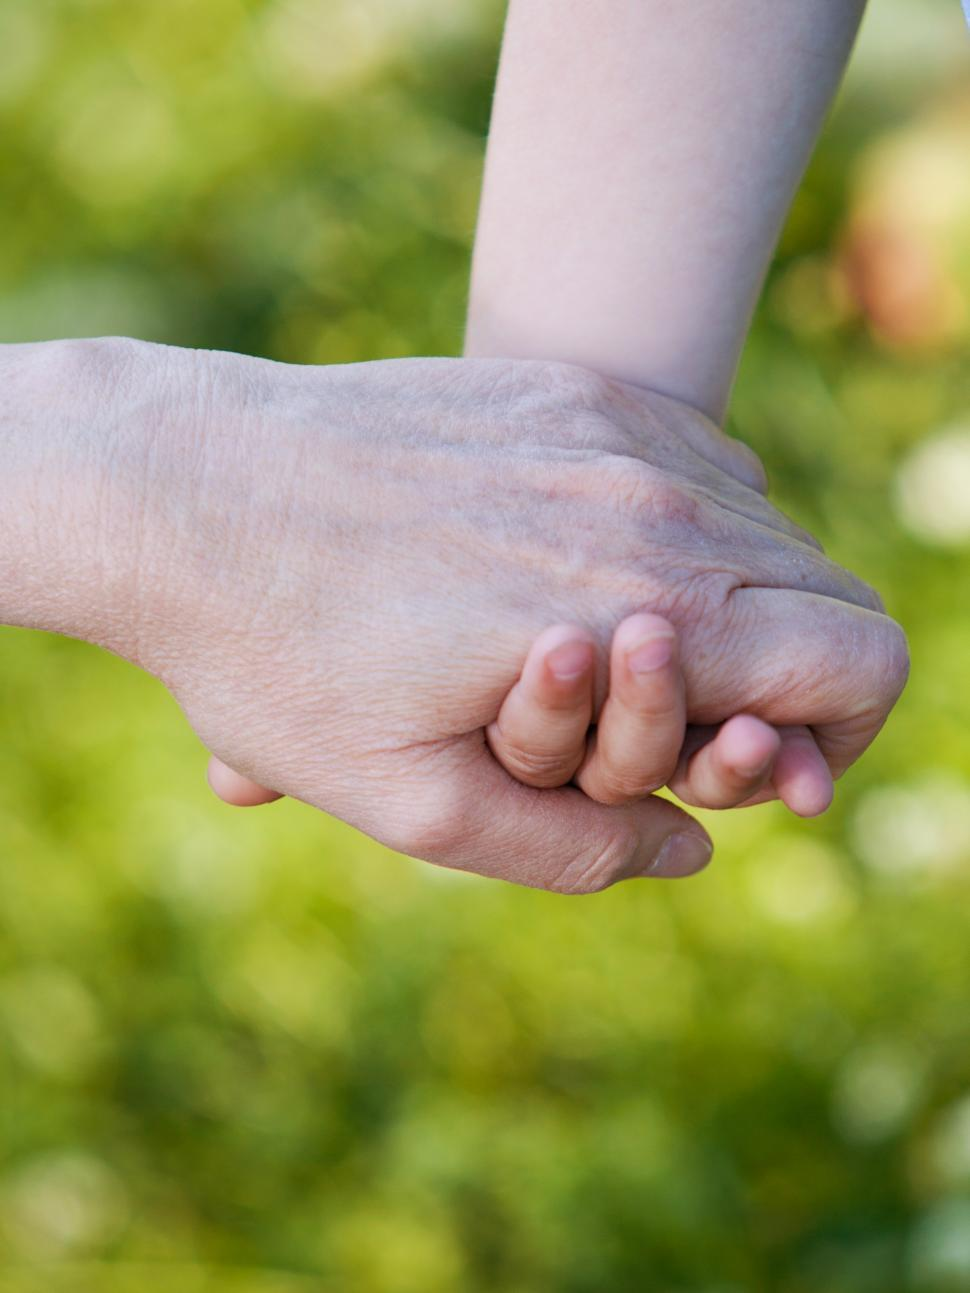 Download Free Stock Photo of Hands of grandson and grandmother together